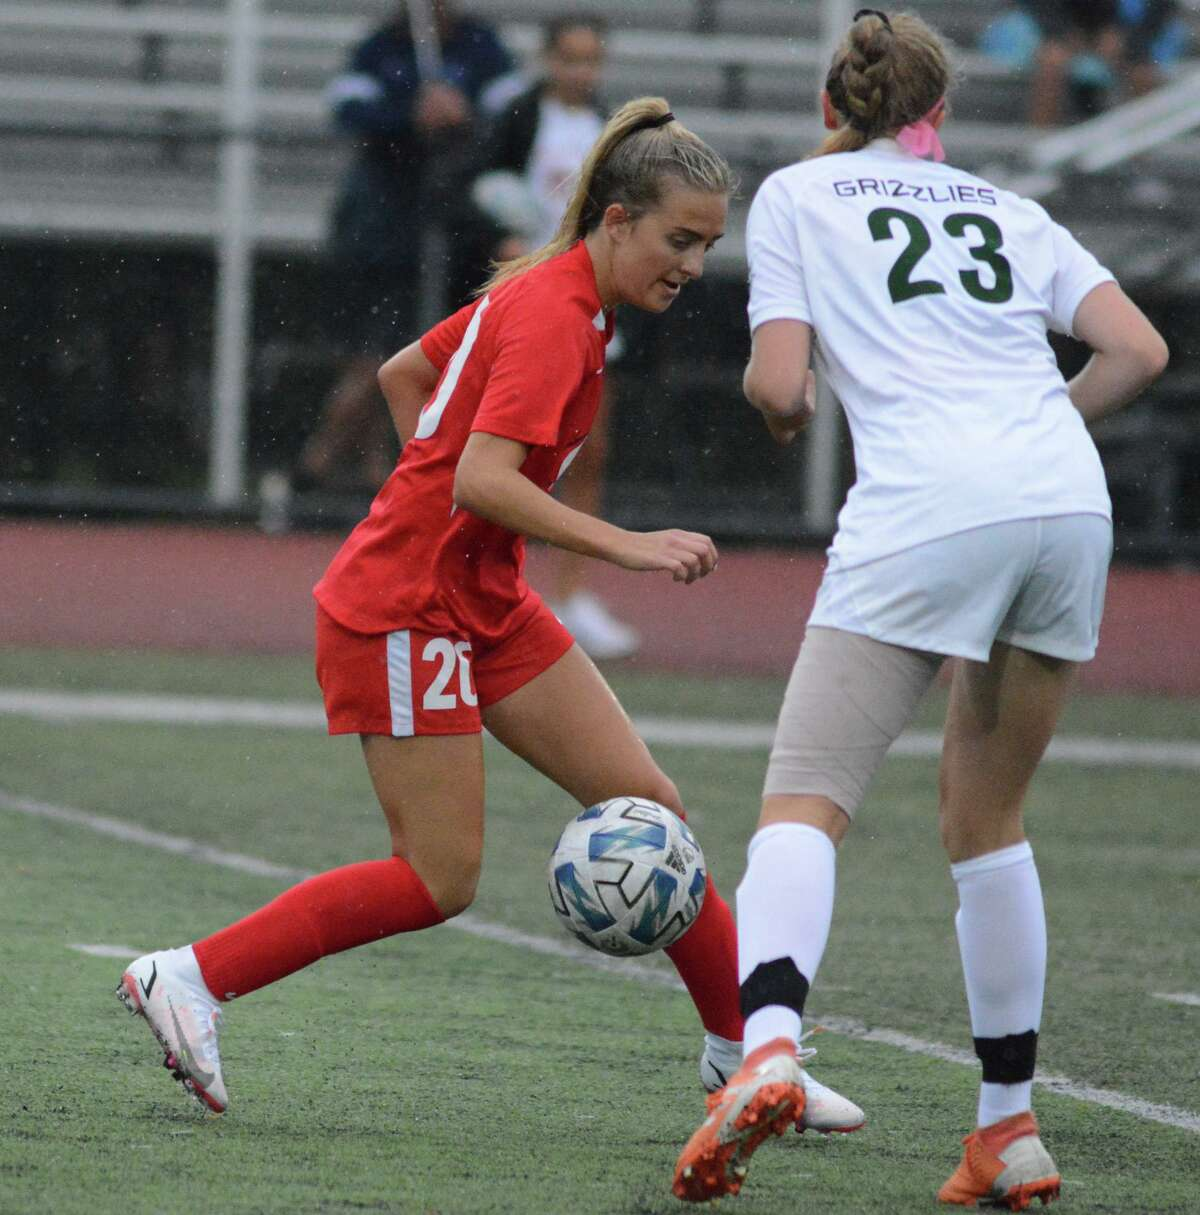 Ariana Geloso of Cheshire controls the ball as she goes past Abby Moore of Guilford on Thursday.